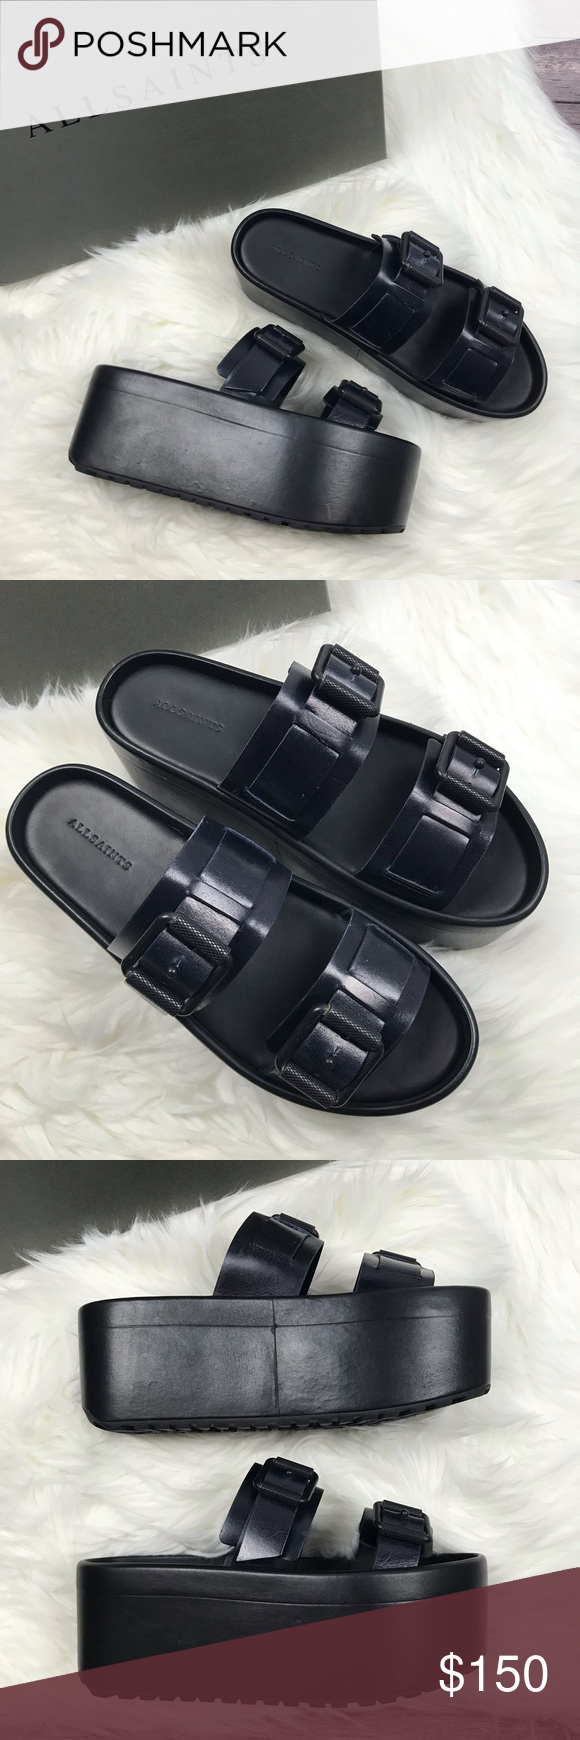 a7ce4d830b61 Allsaints Knox Platform Slide Sandals 39 New in Box Allsaints Knox Platform  Slide Sandals. Size